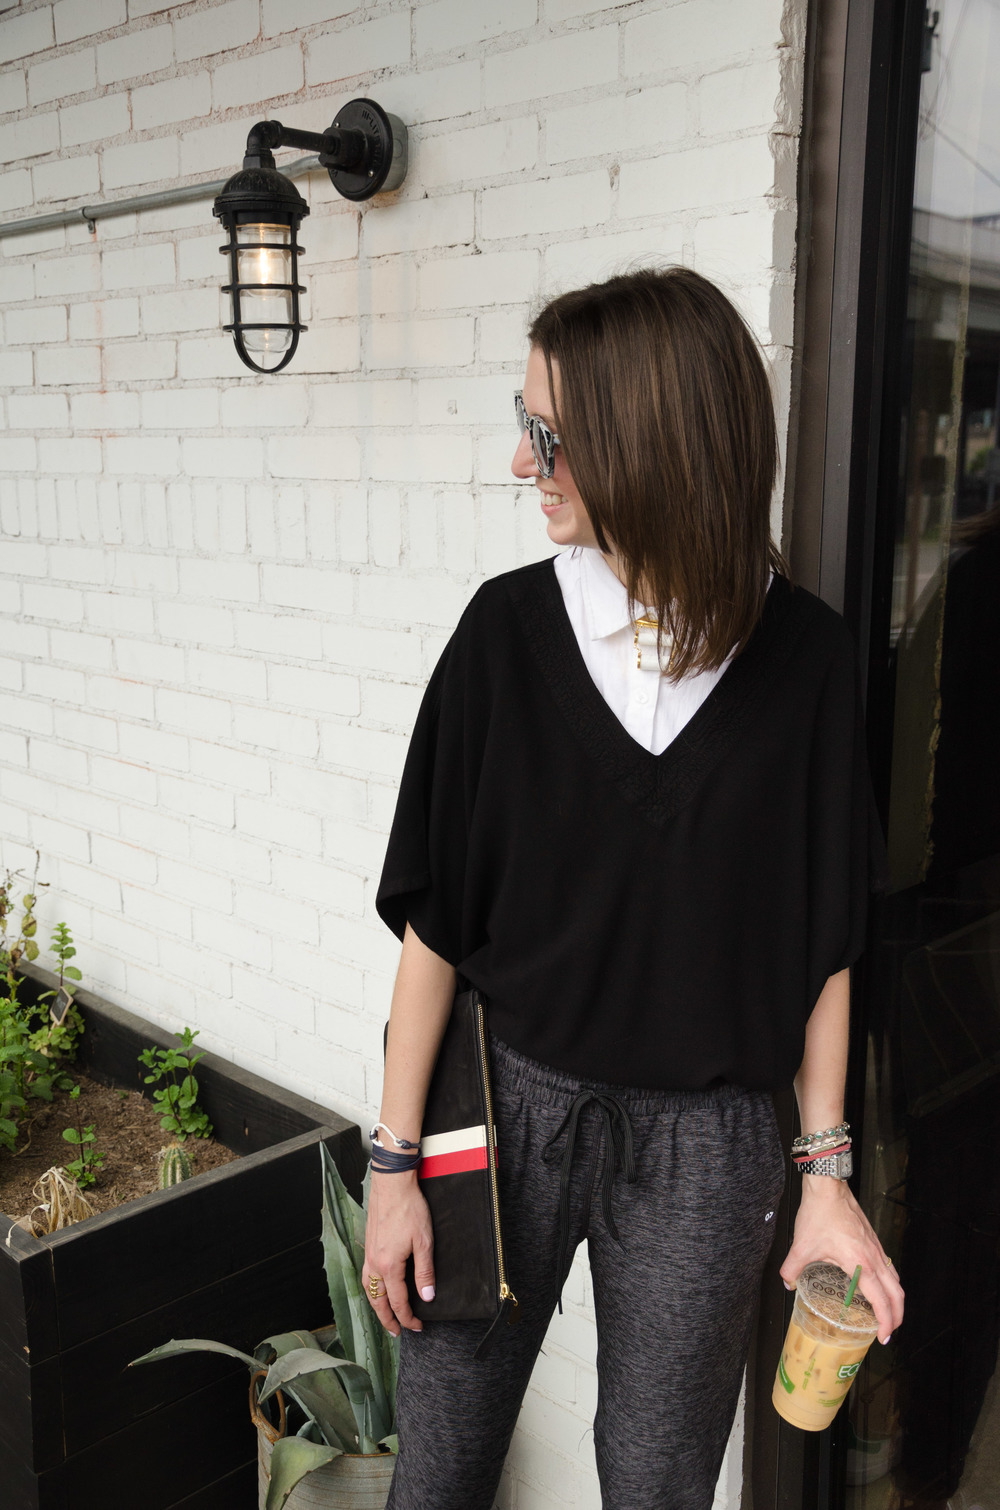 Ath-leisure look including Outdoor Voices drawstring pants, Tienda Ho pull over top, and Clare Vivier clutch